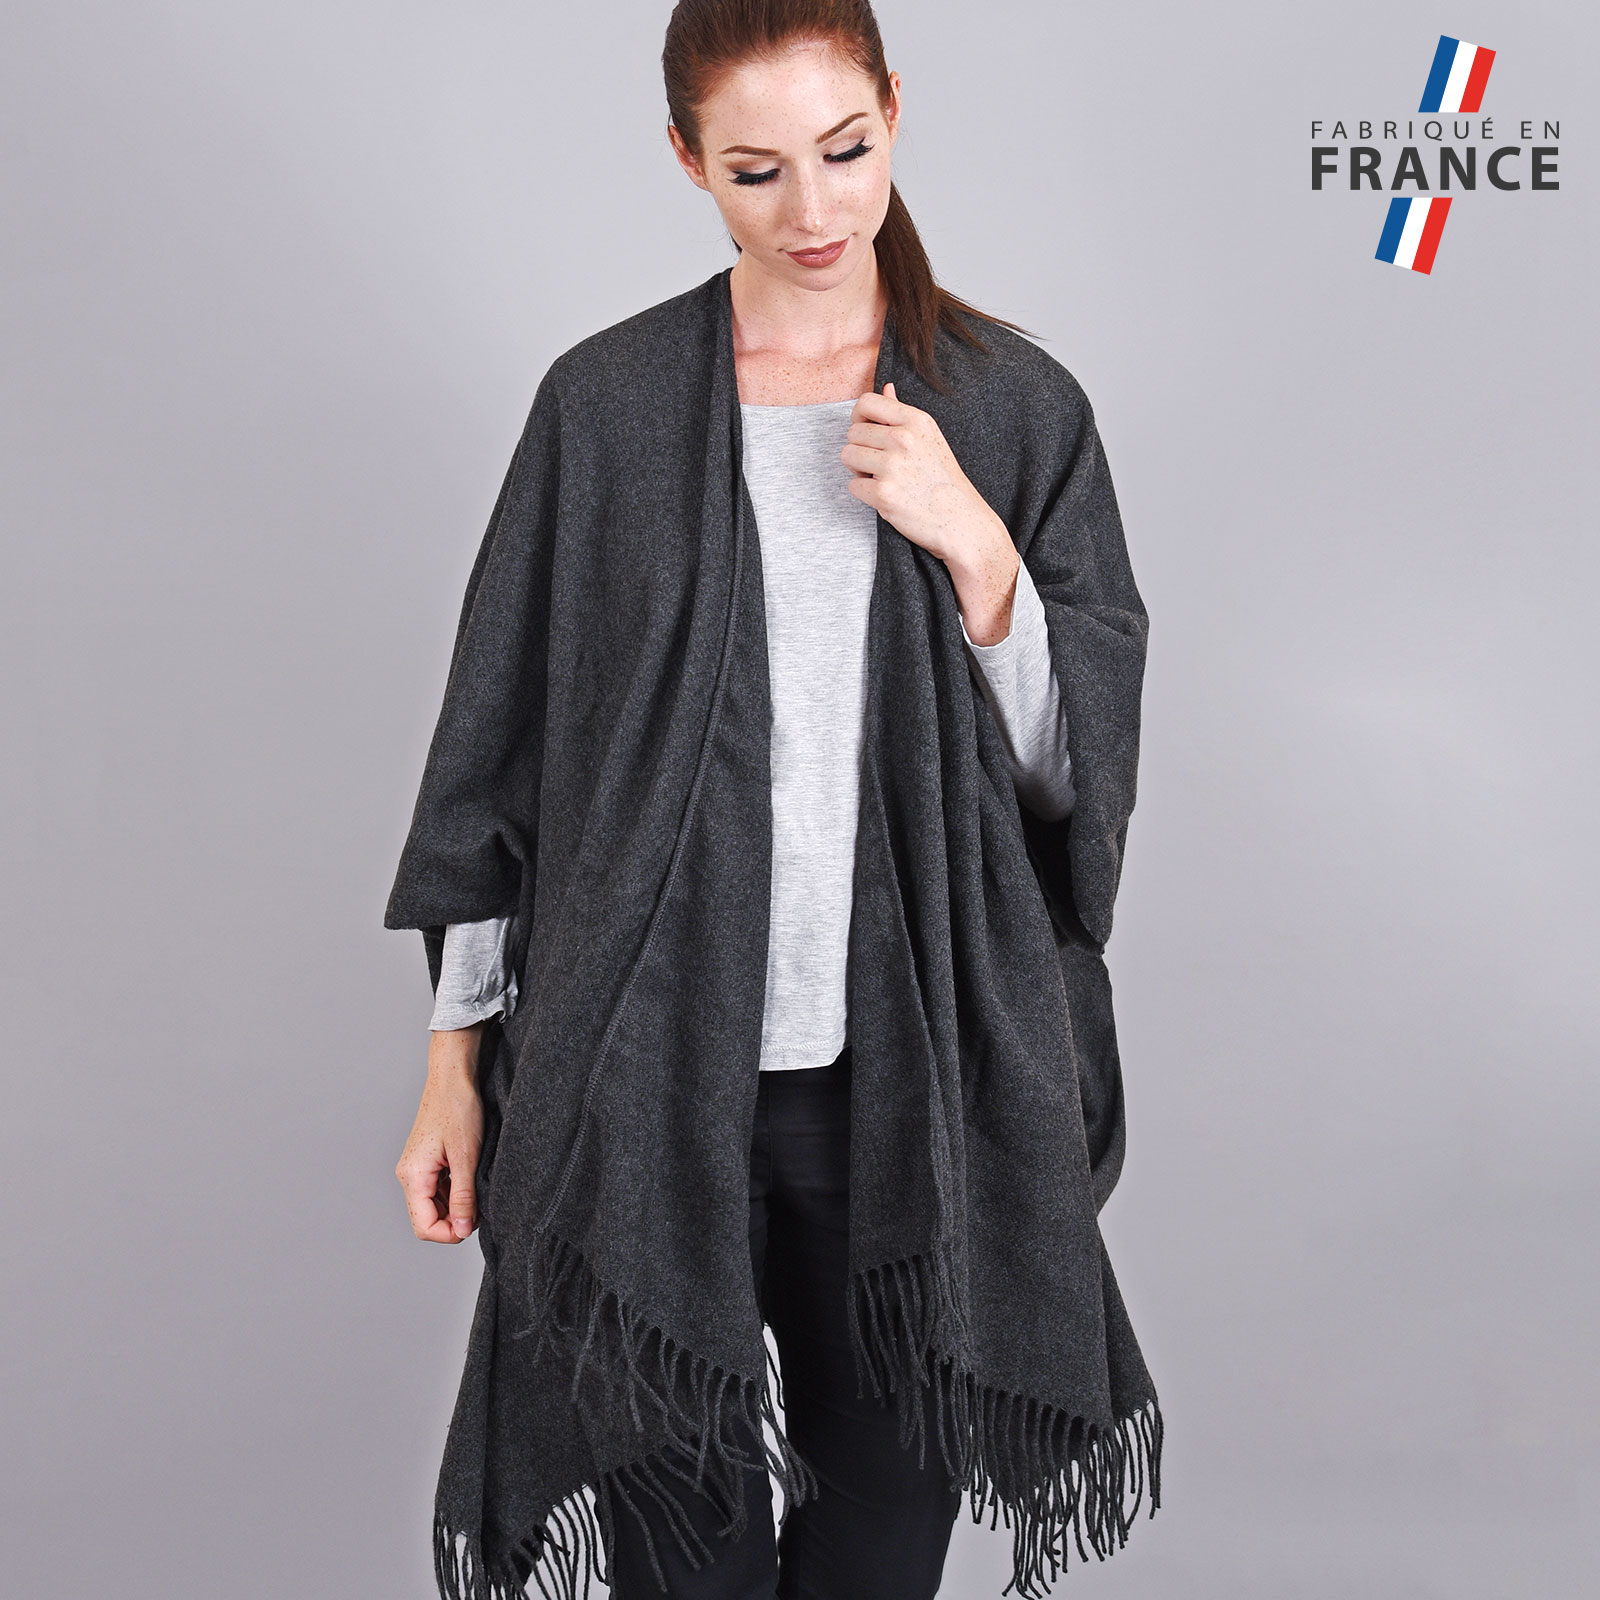 AT-03985-VF16-1-LB_FR-poncho-femme-hiver-larges-poches